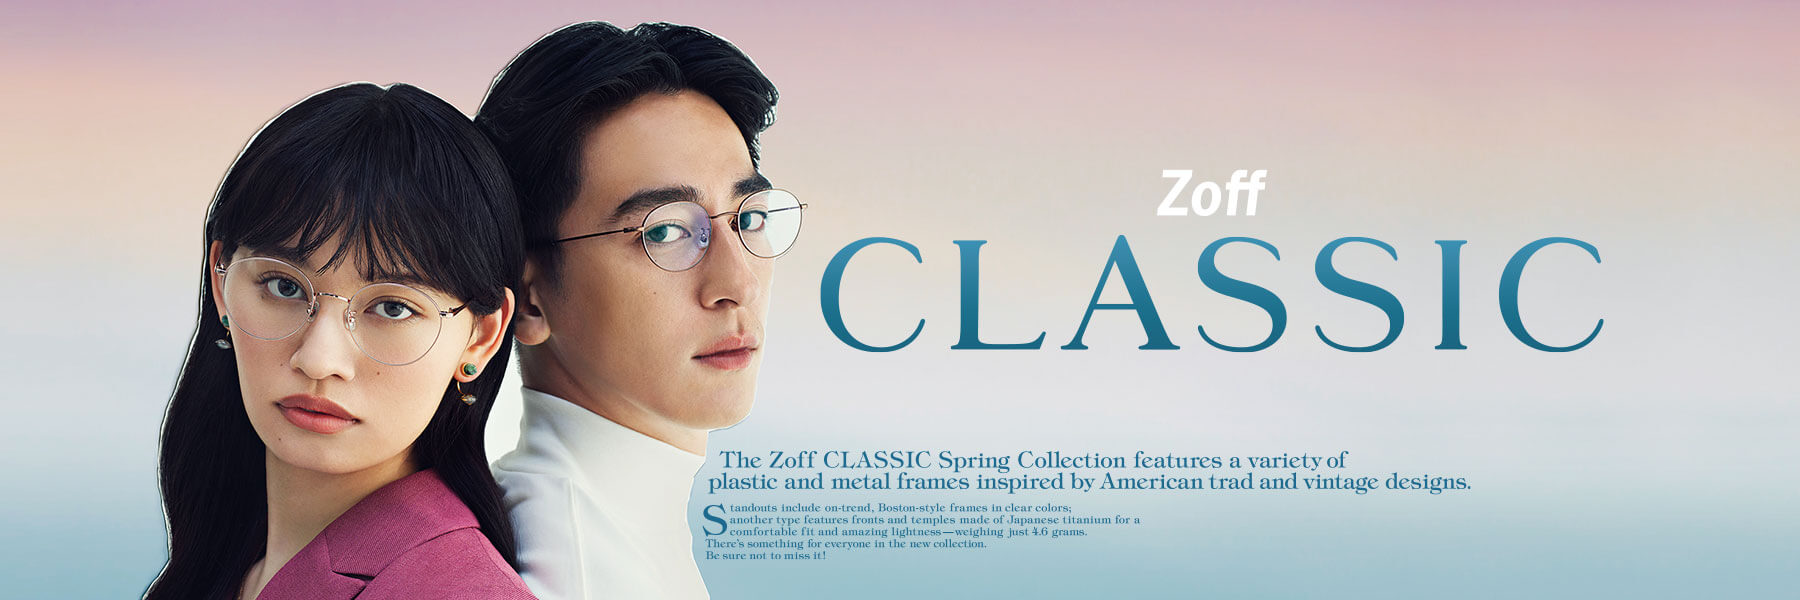 Zoff CLASSIC Spring Collection